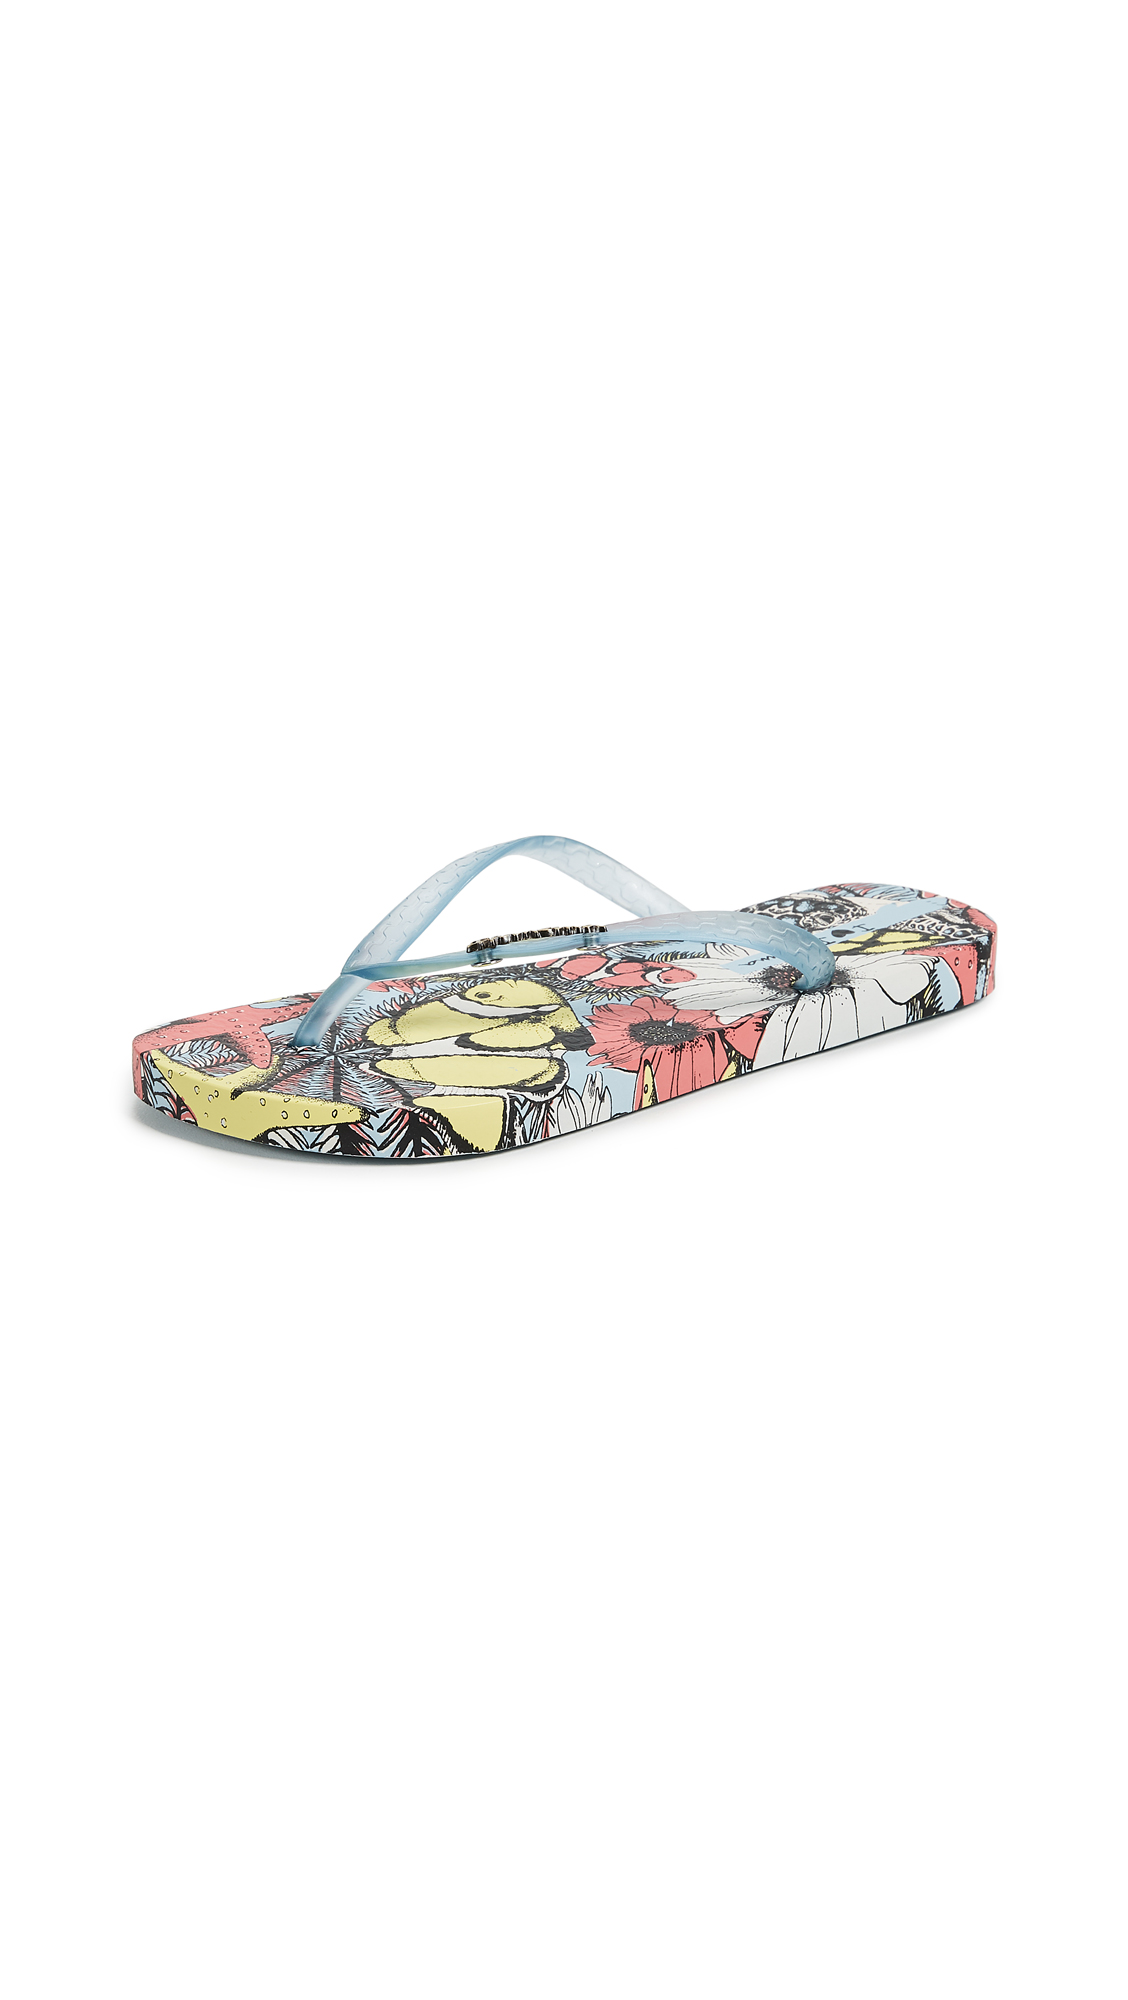 Ipanema Beauty Print Flip Flops - Blue/White/Pink